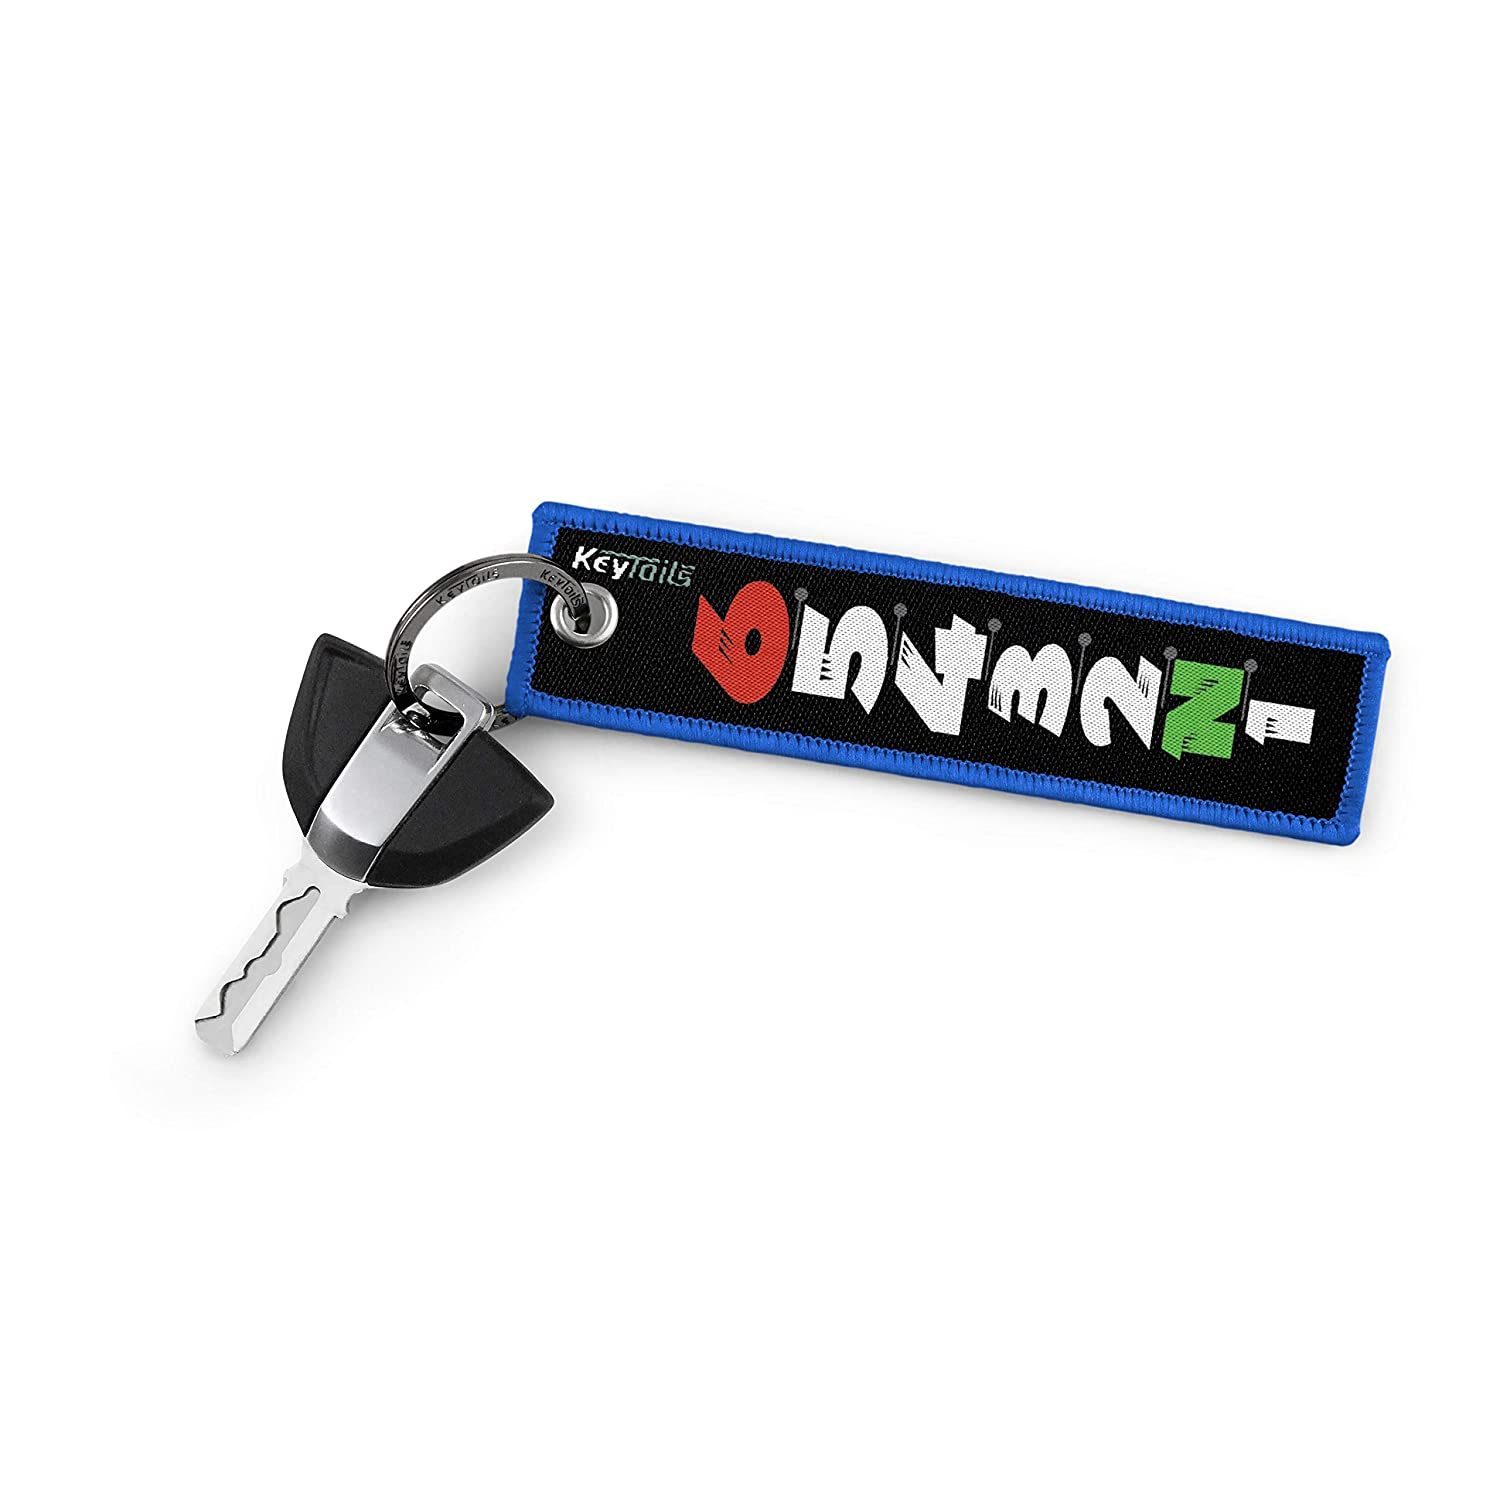 Premium Quality Key Tag for Motorcycle Sportbike KEYTAILS Keychains 1 Down 5 Up - 65432N1